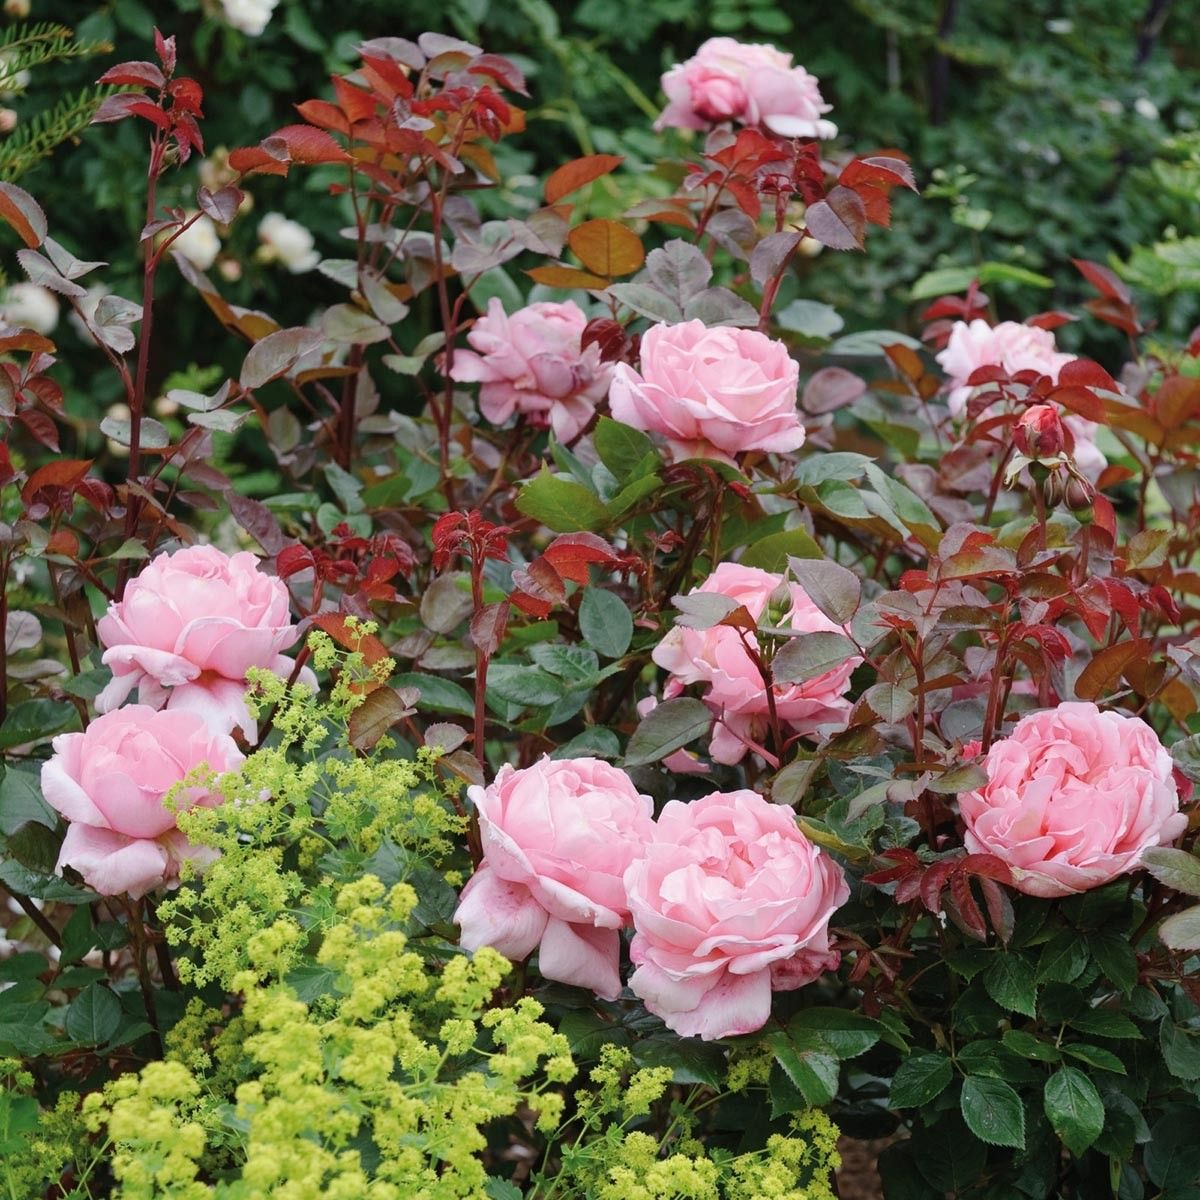 Brother cadfael roses pinterest tree planting plants and very large globular clear pink flowers particularly strong and rich old rose fragrance mightylinksfo